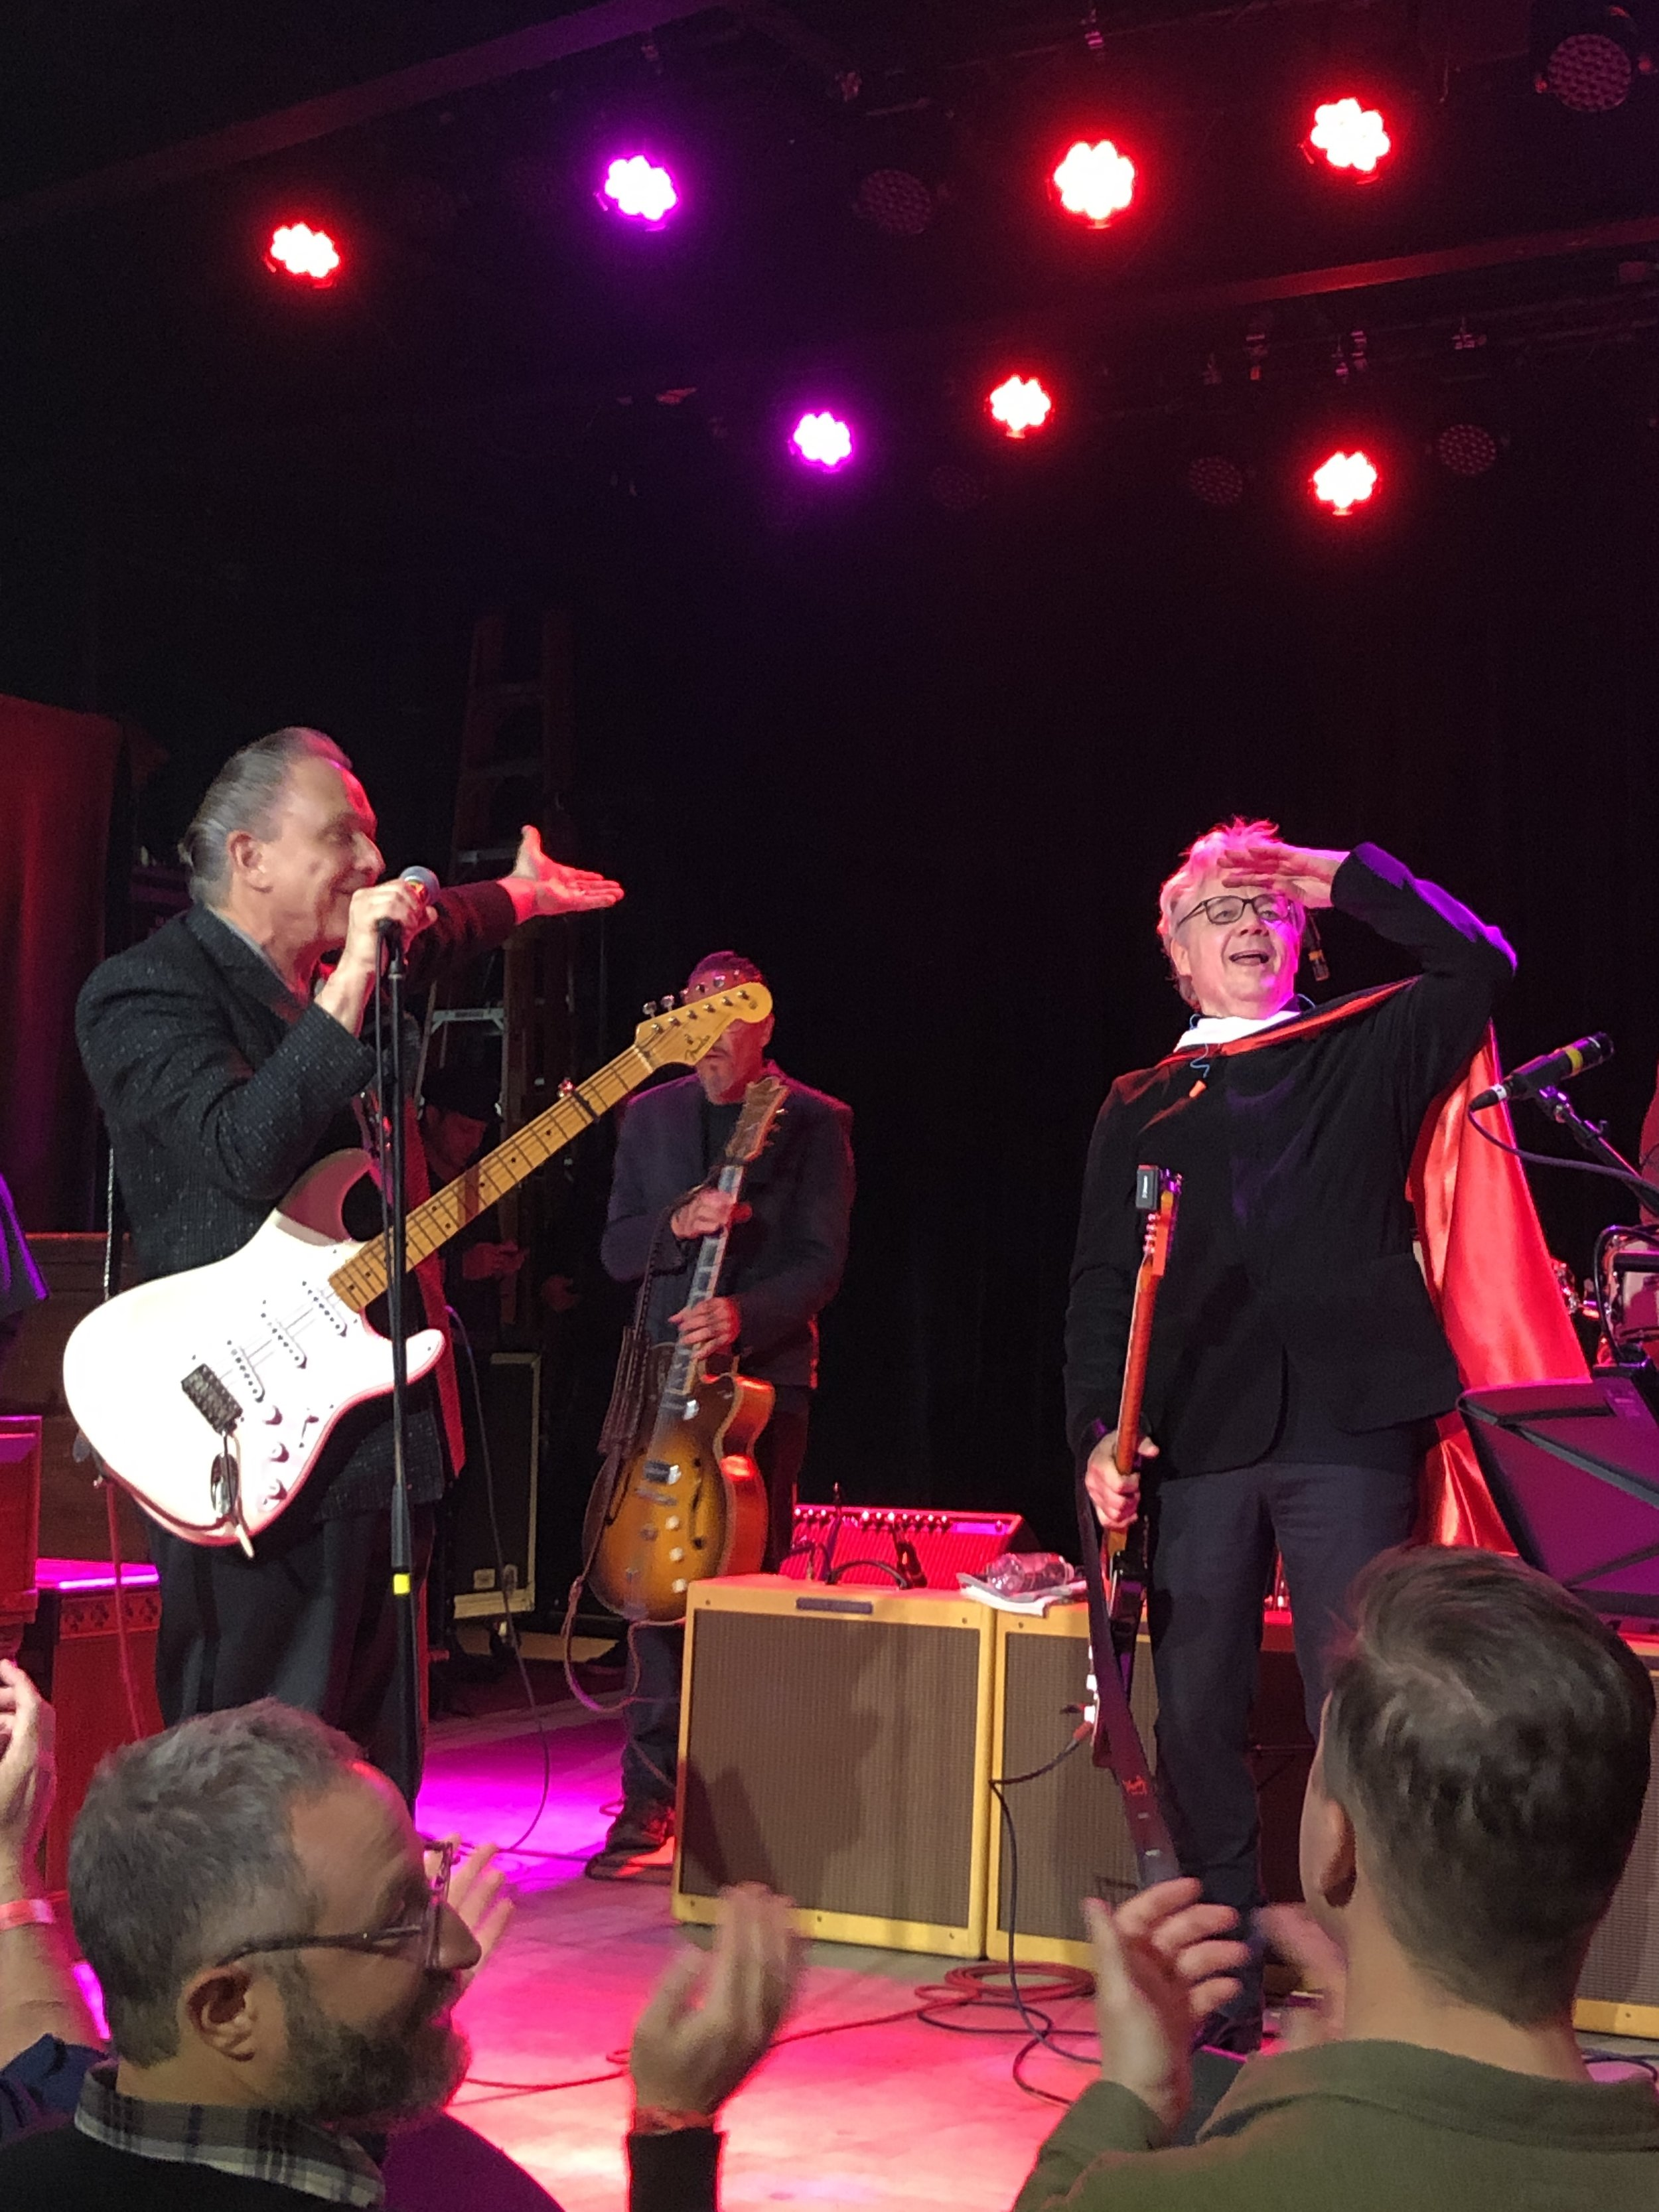 Jimmie Vaughan and Steve Miller jamming in celebration of Steve's honorary degree from the University of Wisconsin.